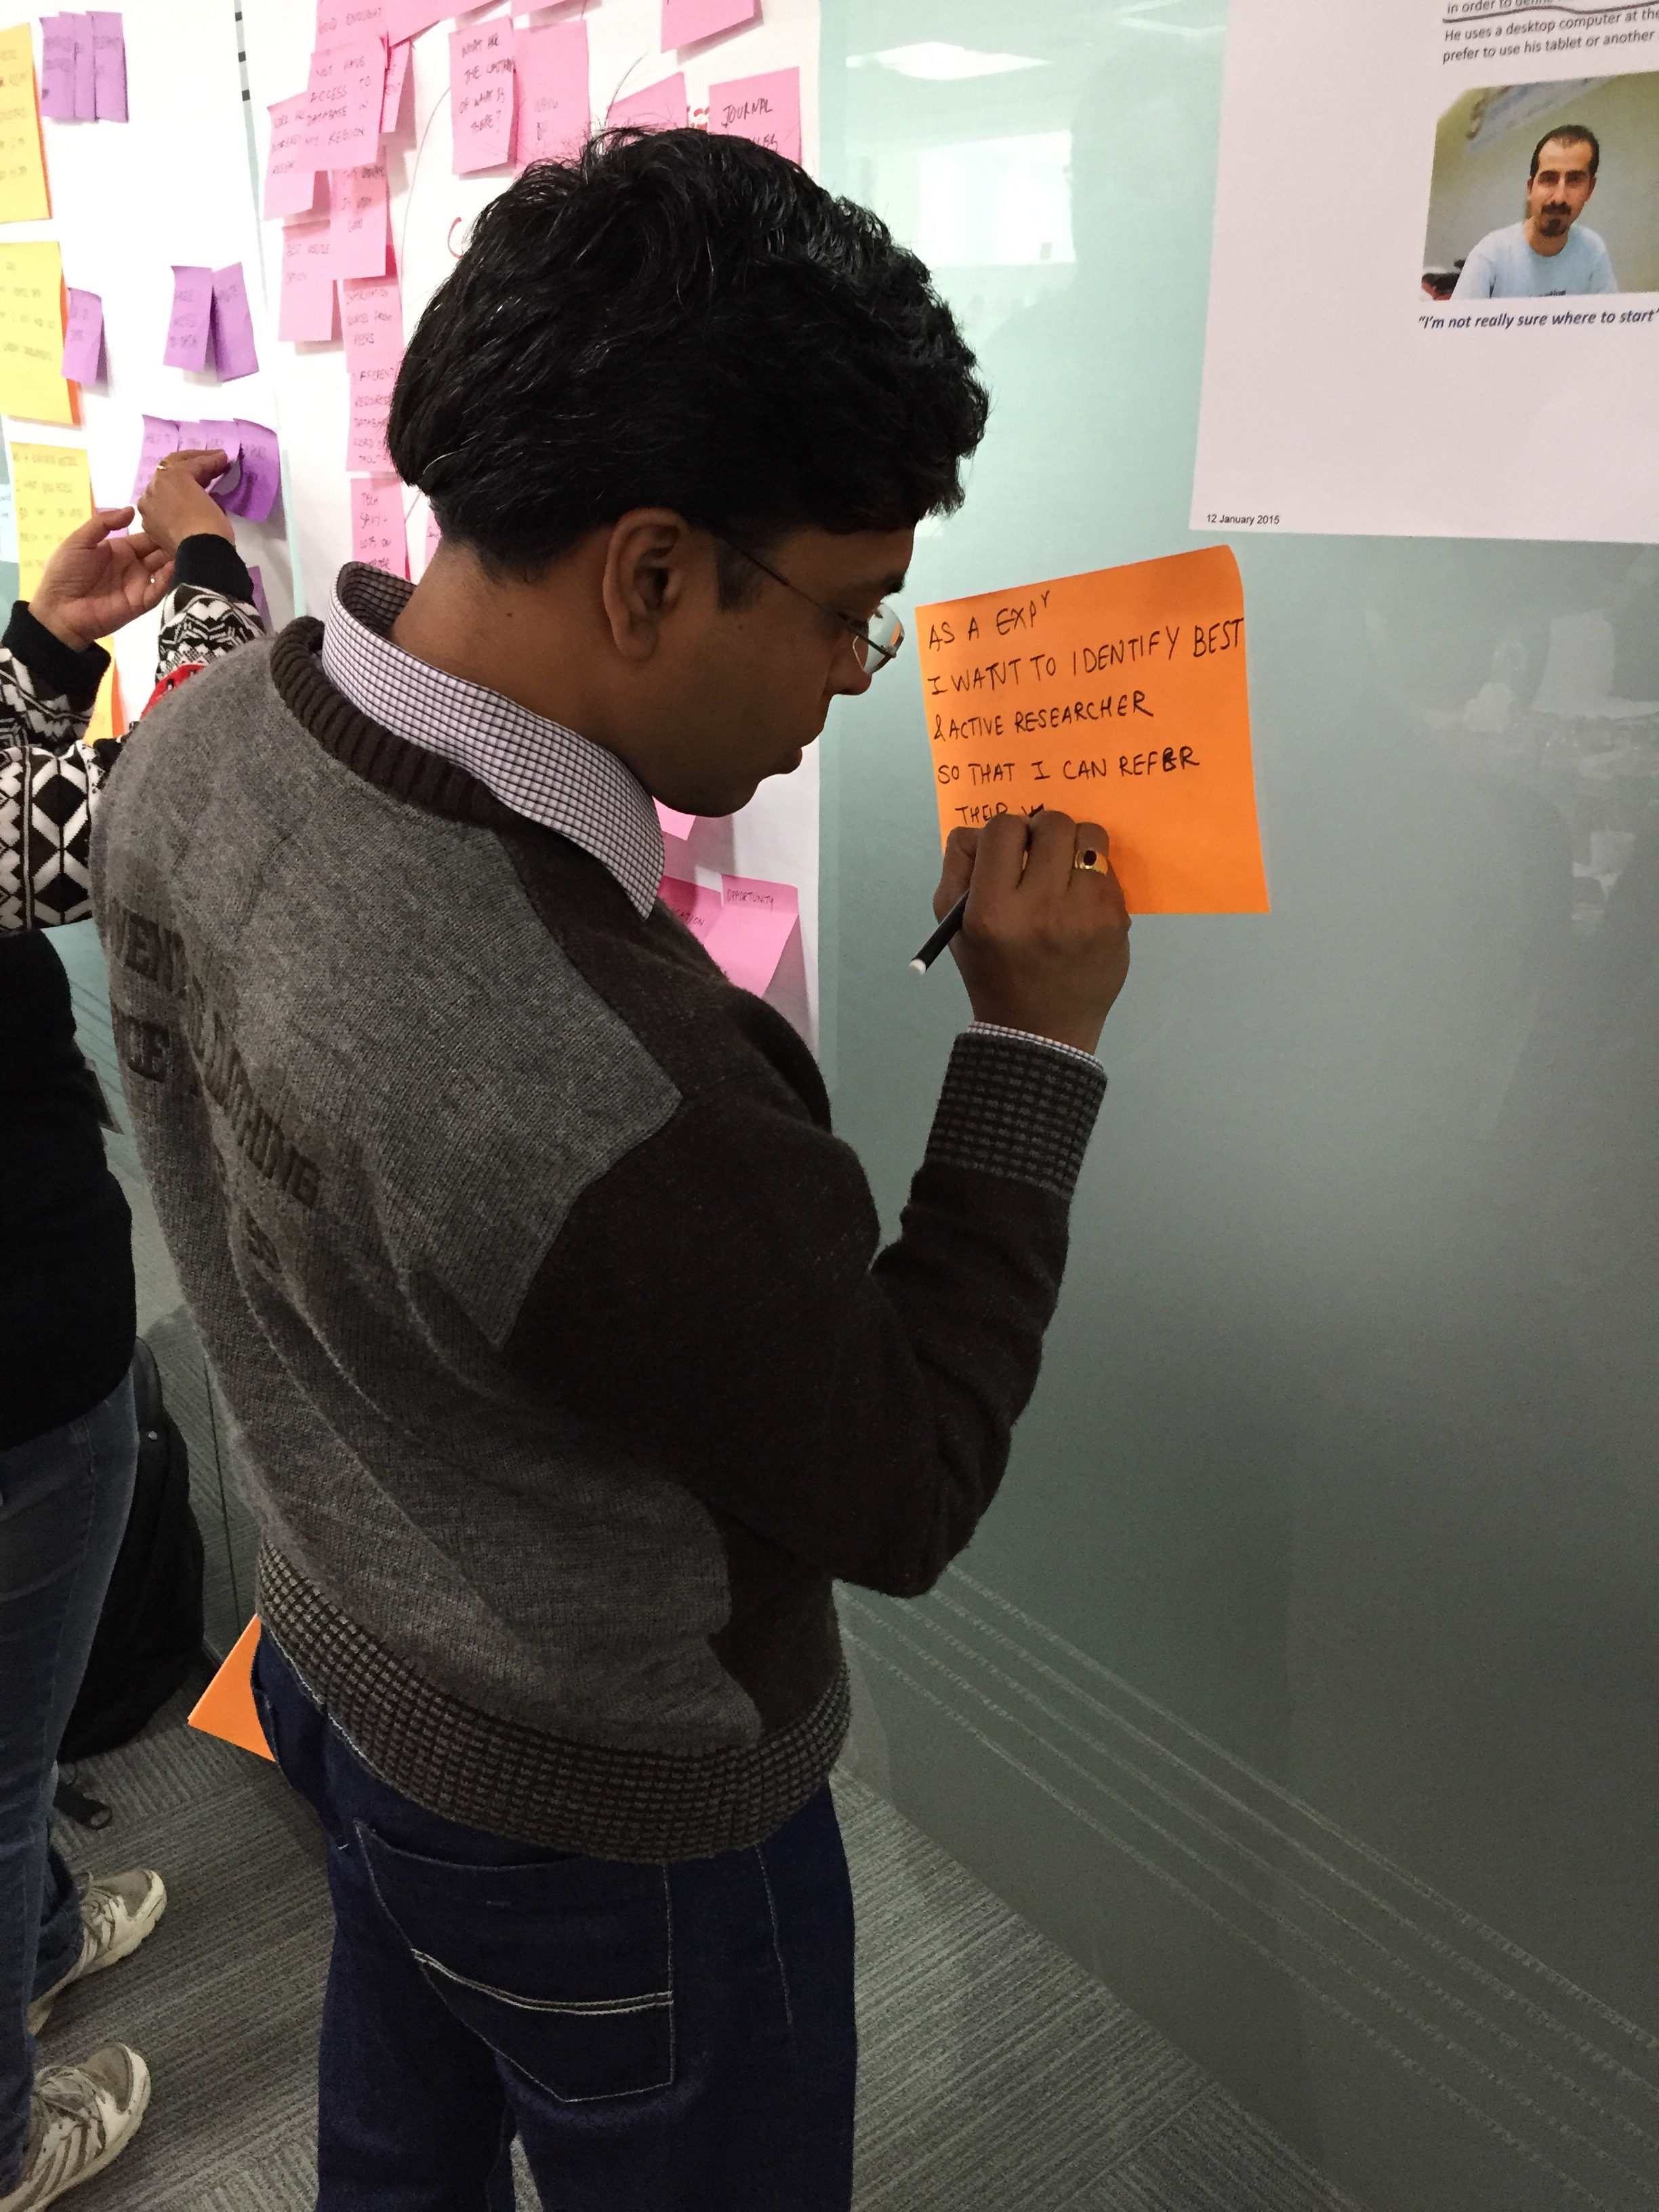 A member of our Pune production team, wiriting out user goals from the personas